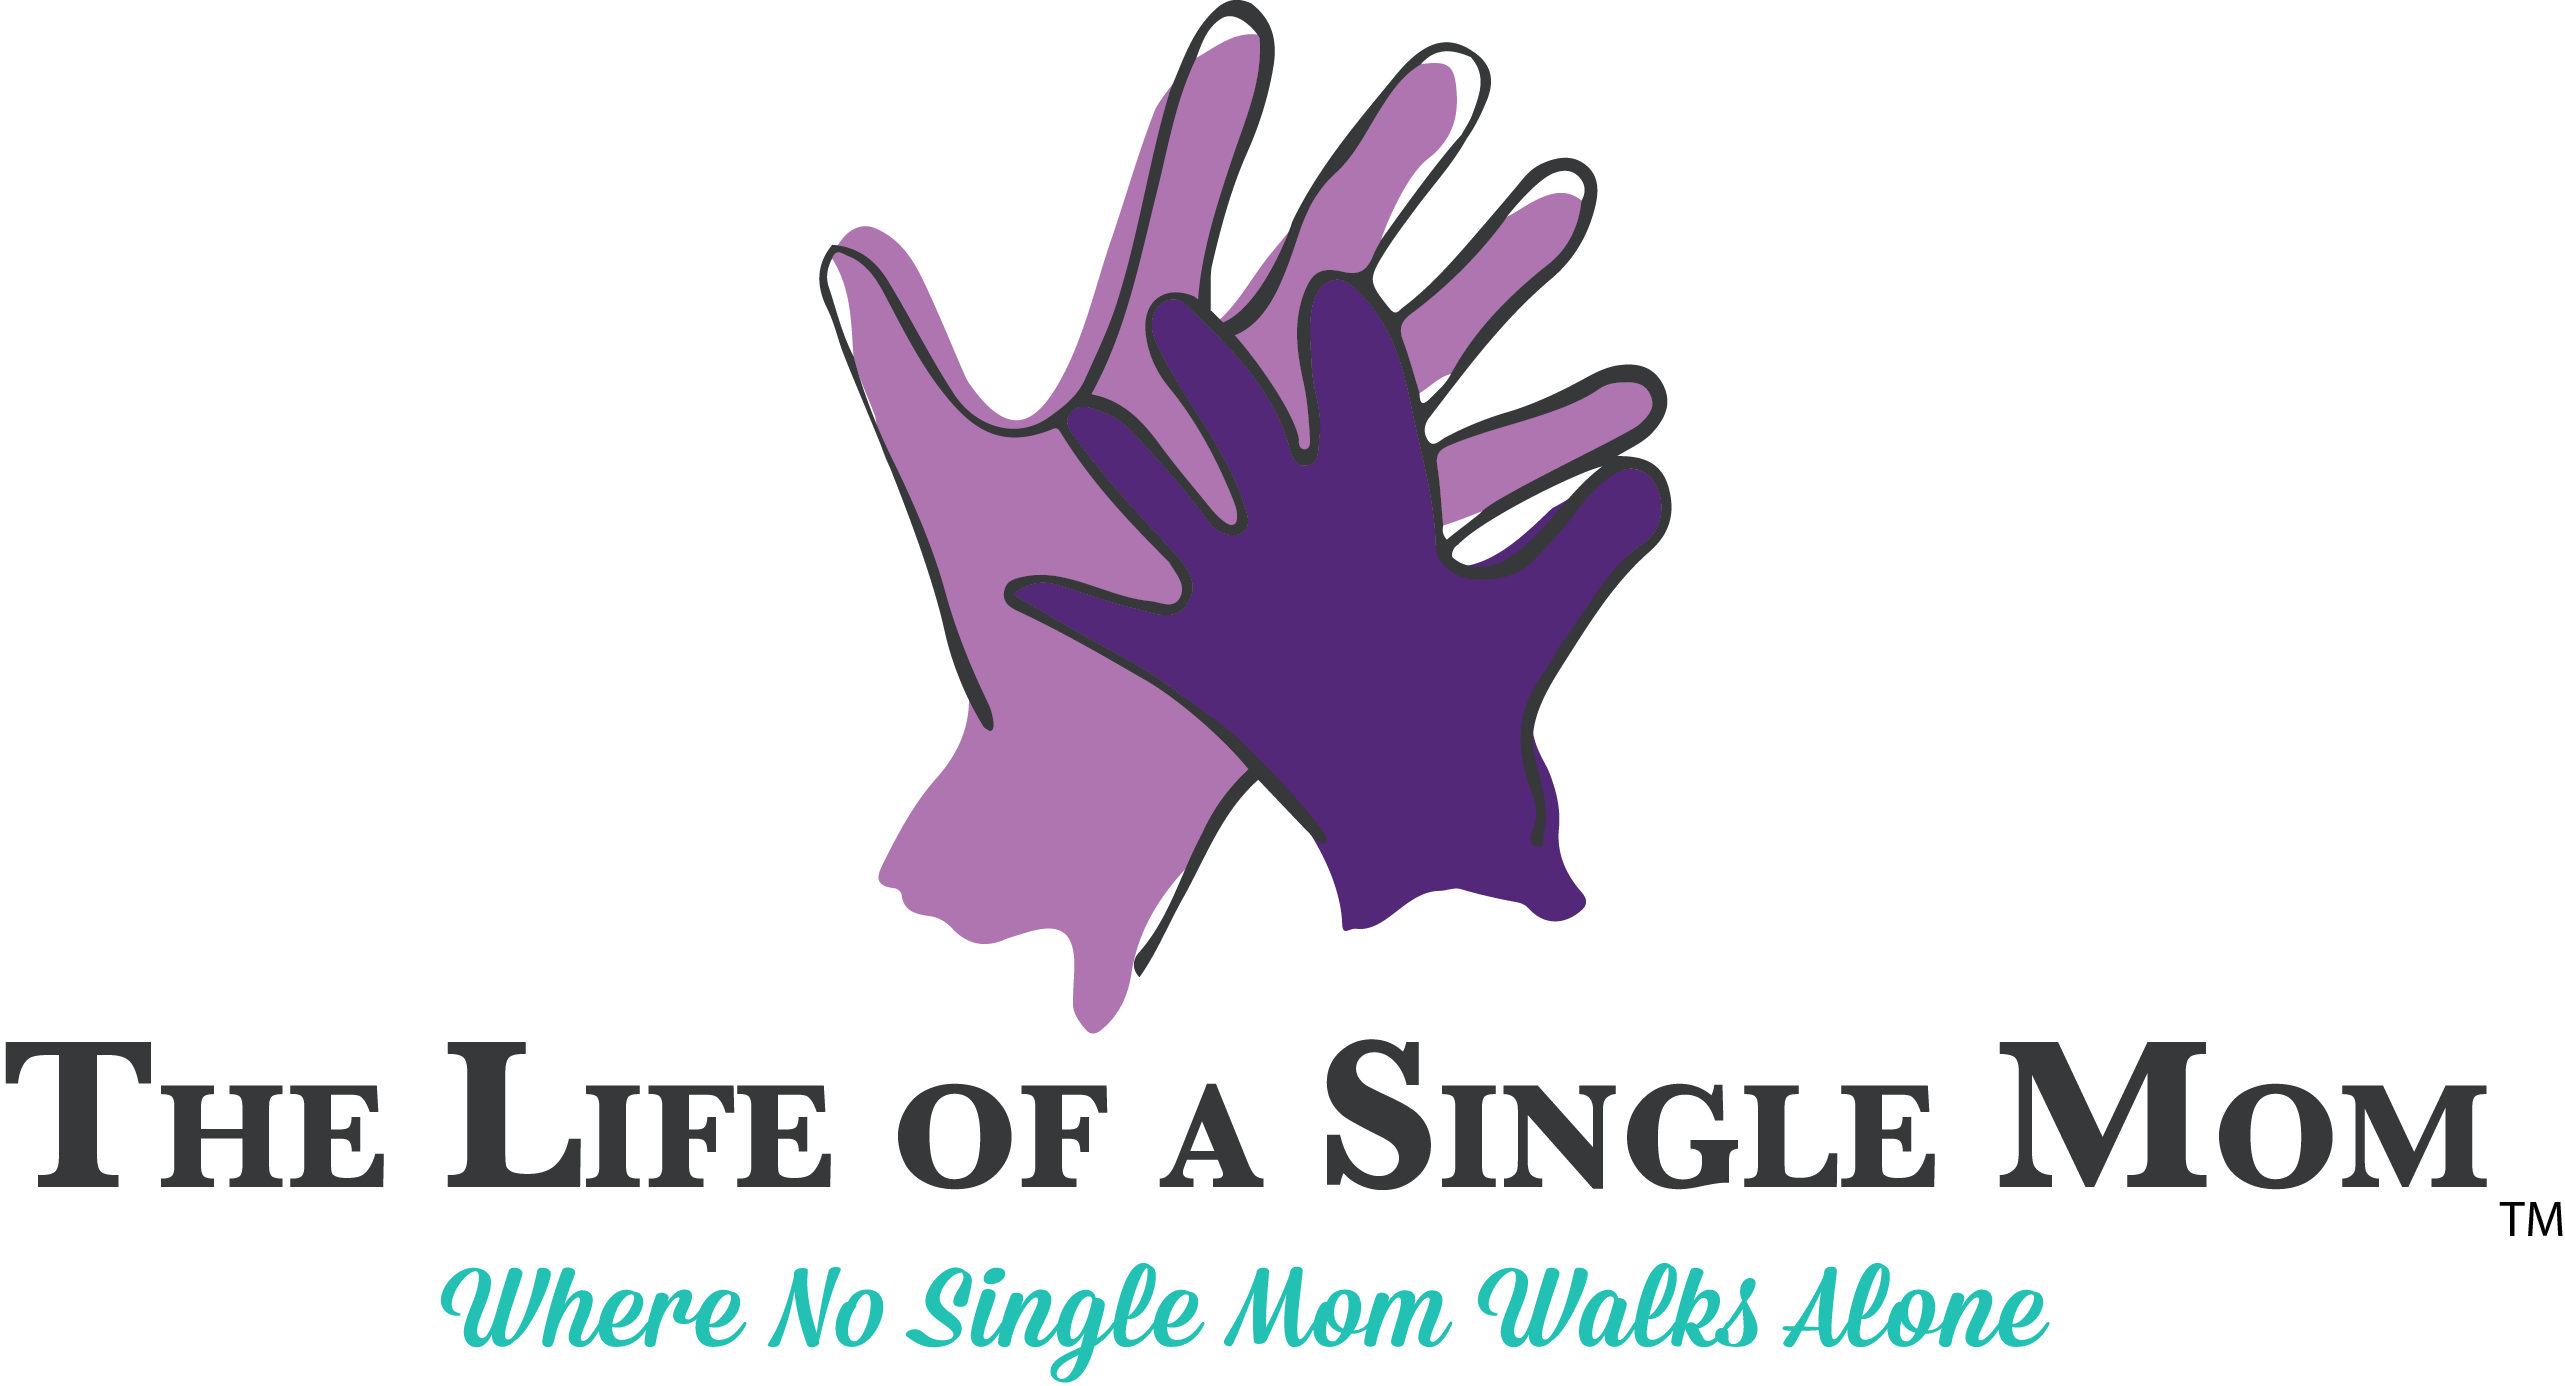 The Life of a Single Mom Sticky Logo